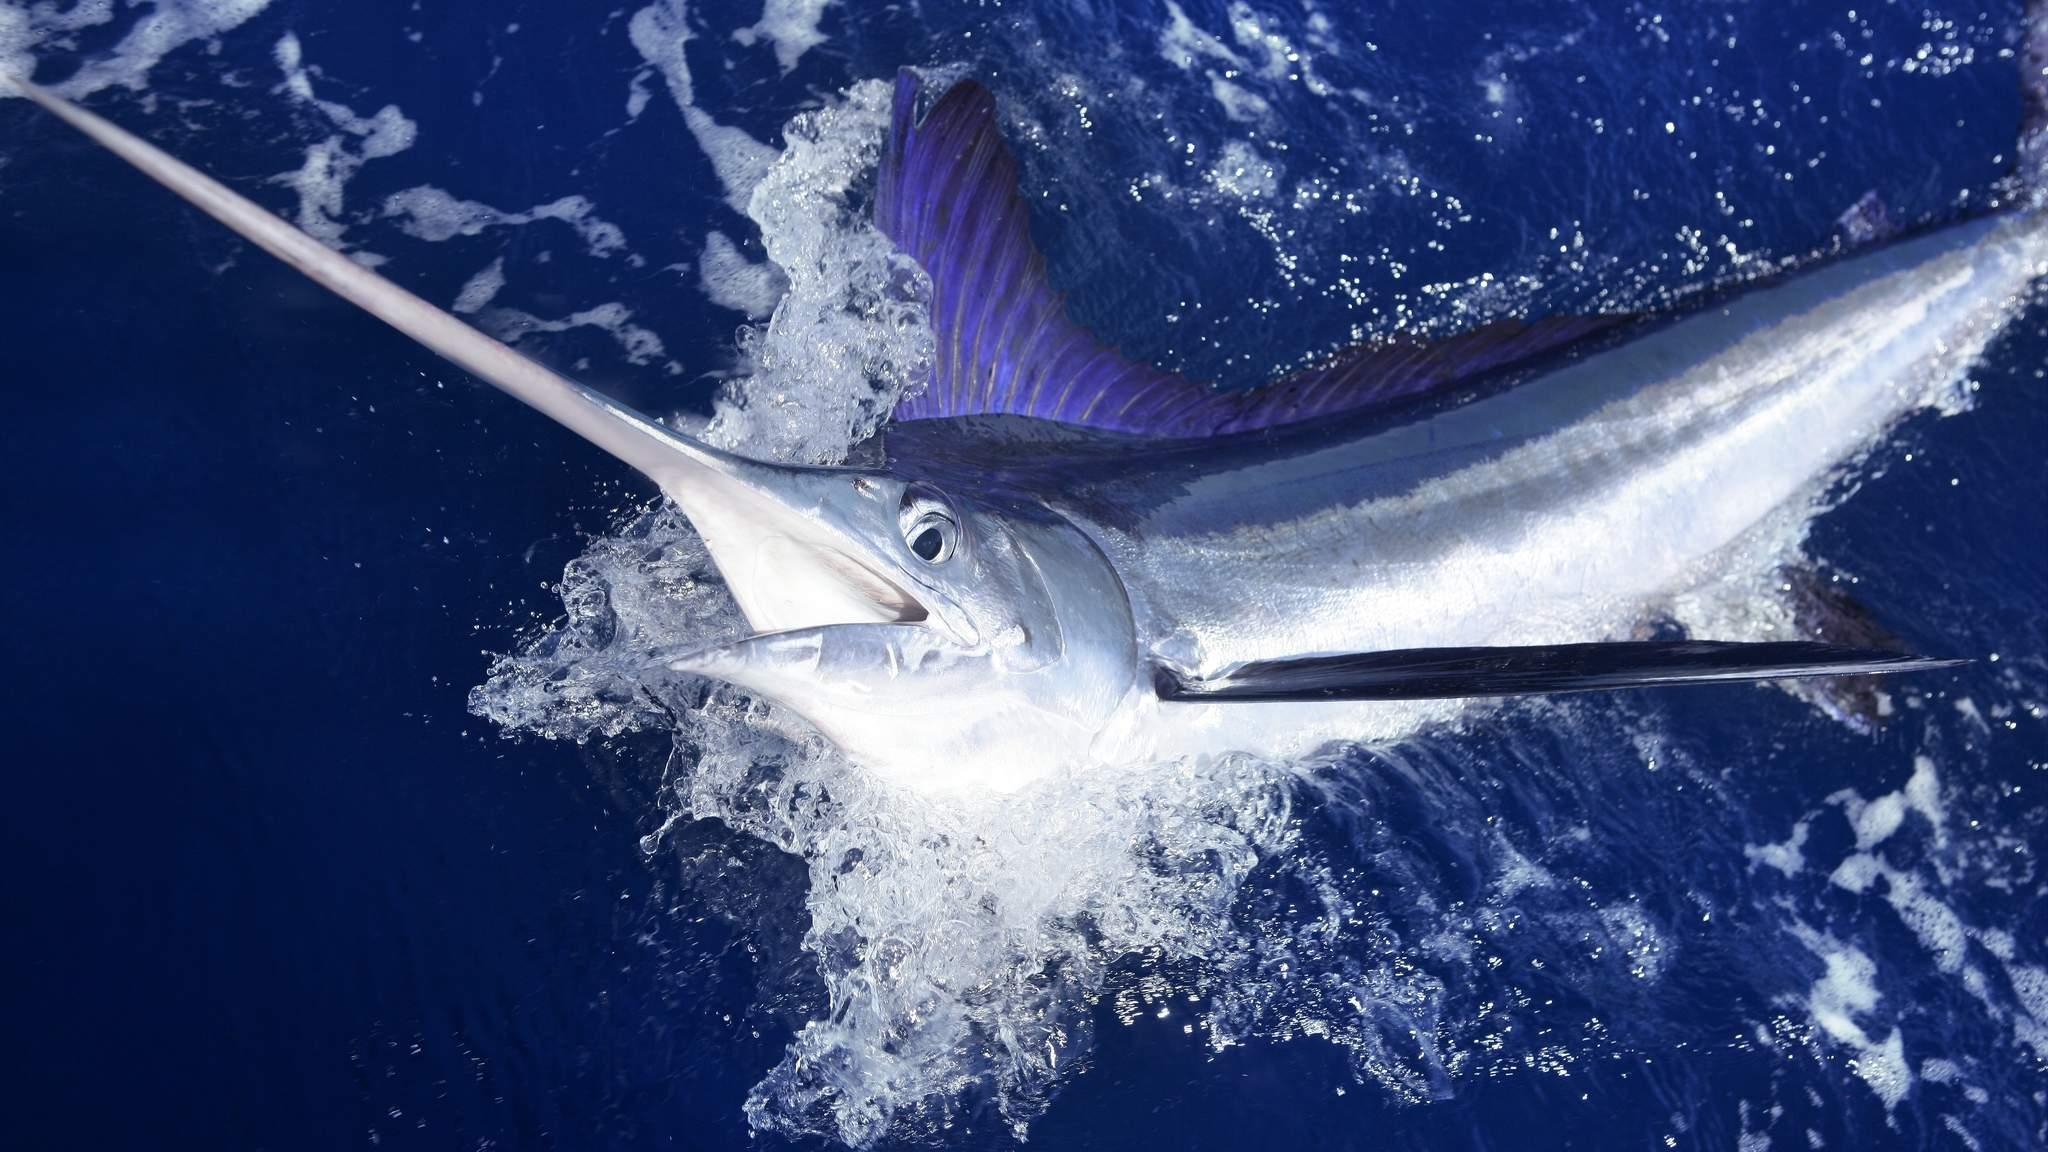 Hawaiian fisherman dies in struggle with swordfish he speared